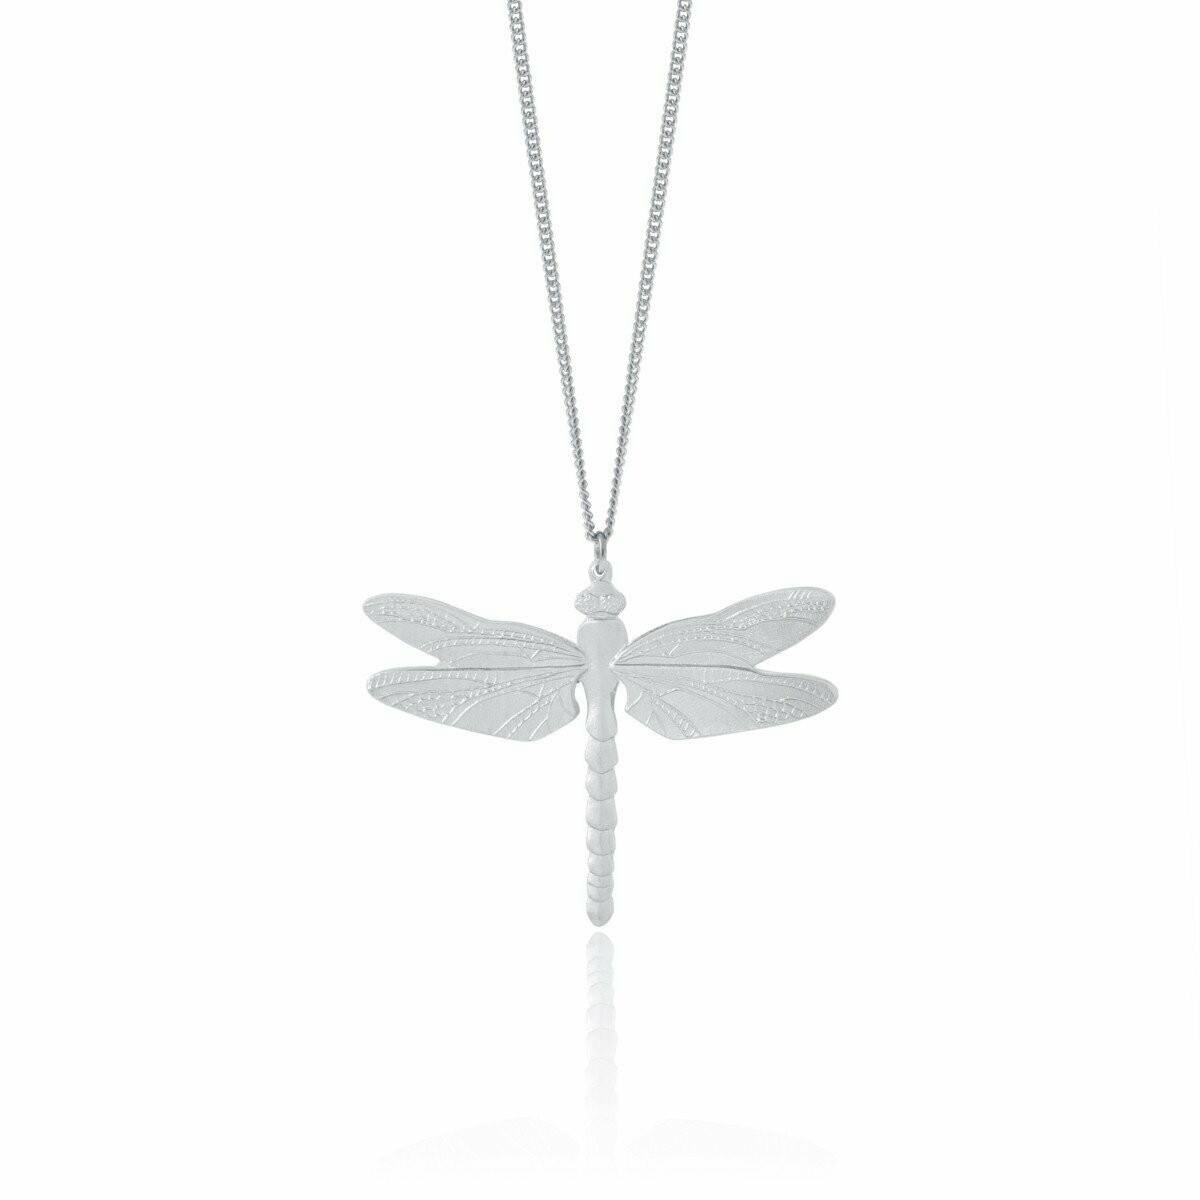 "Dragonfly Necklace 24"" - Amos"